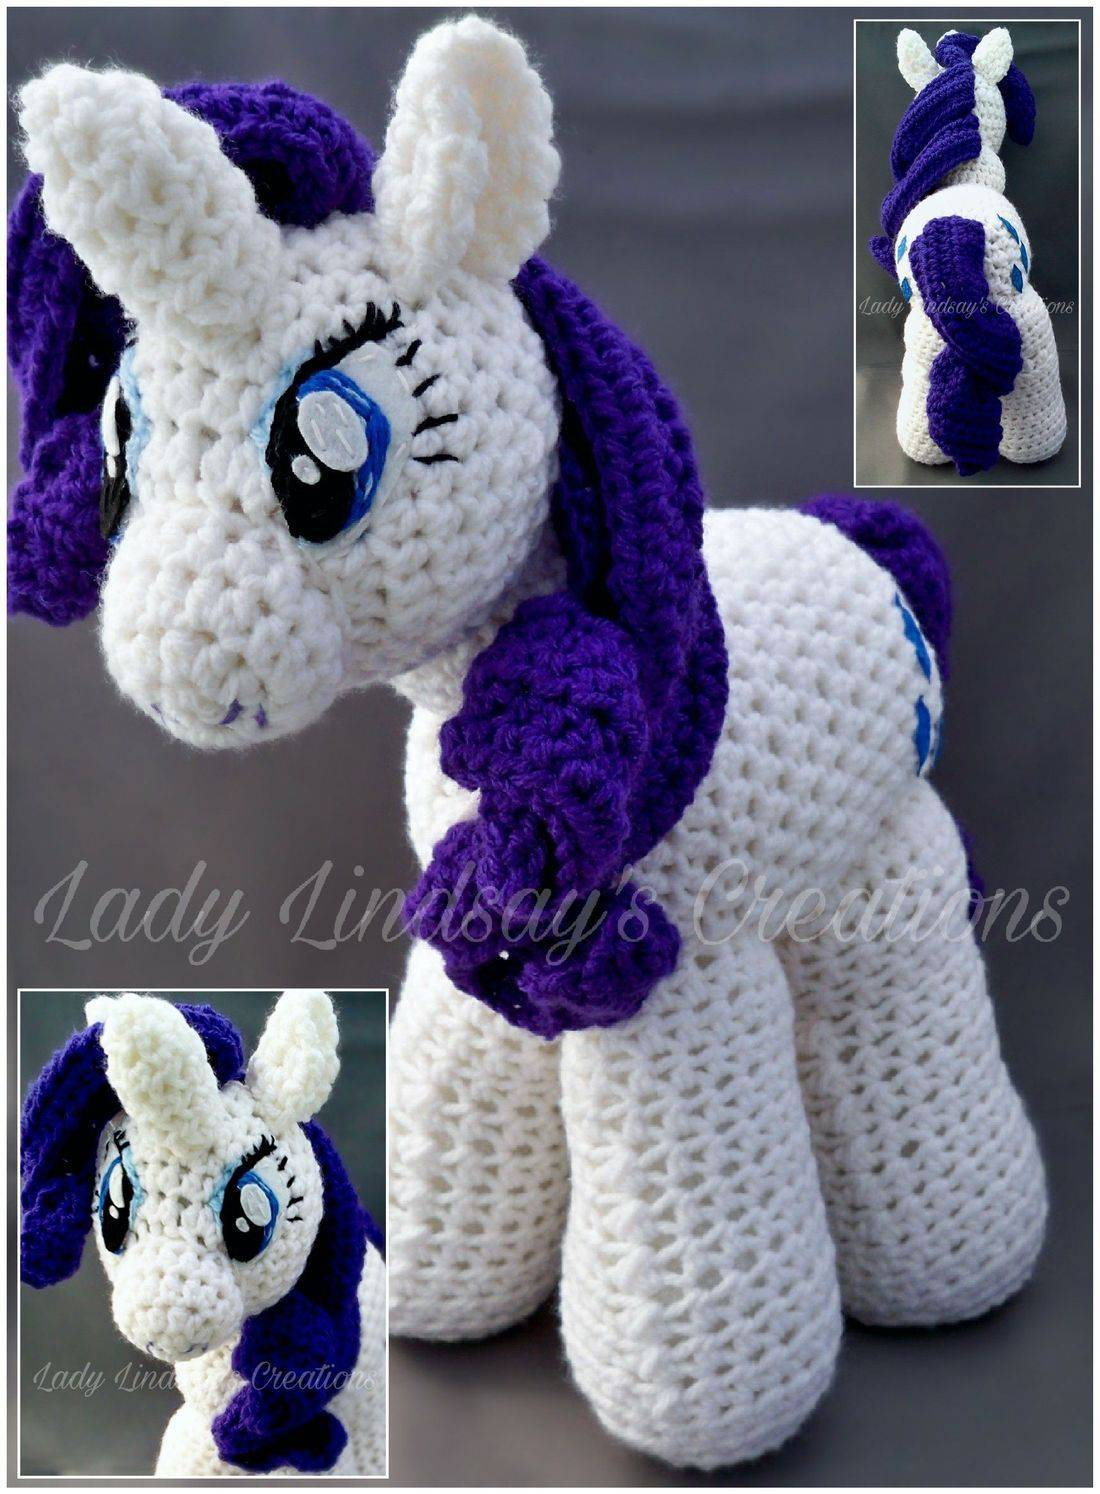 Rarity, MLP, My Little Pony, Anime, Crochet, Handmade, Brony, Pony, Amigurumi, Plush, handmade